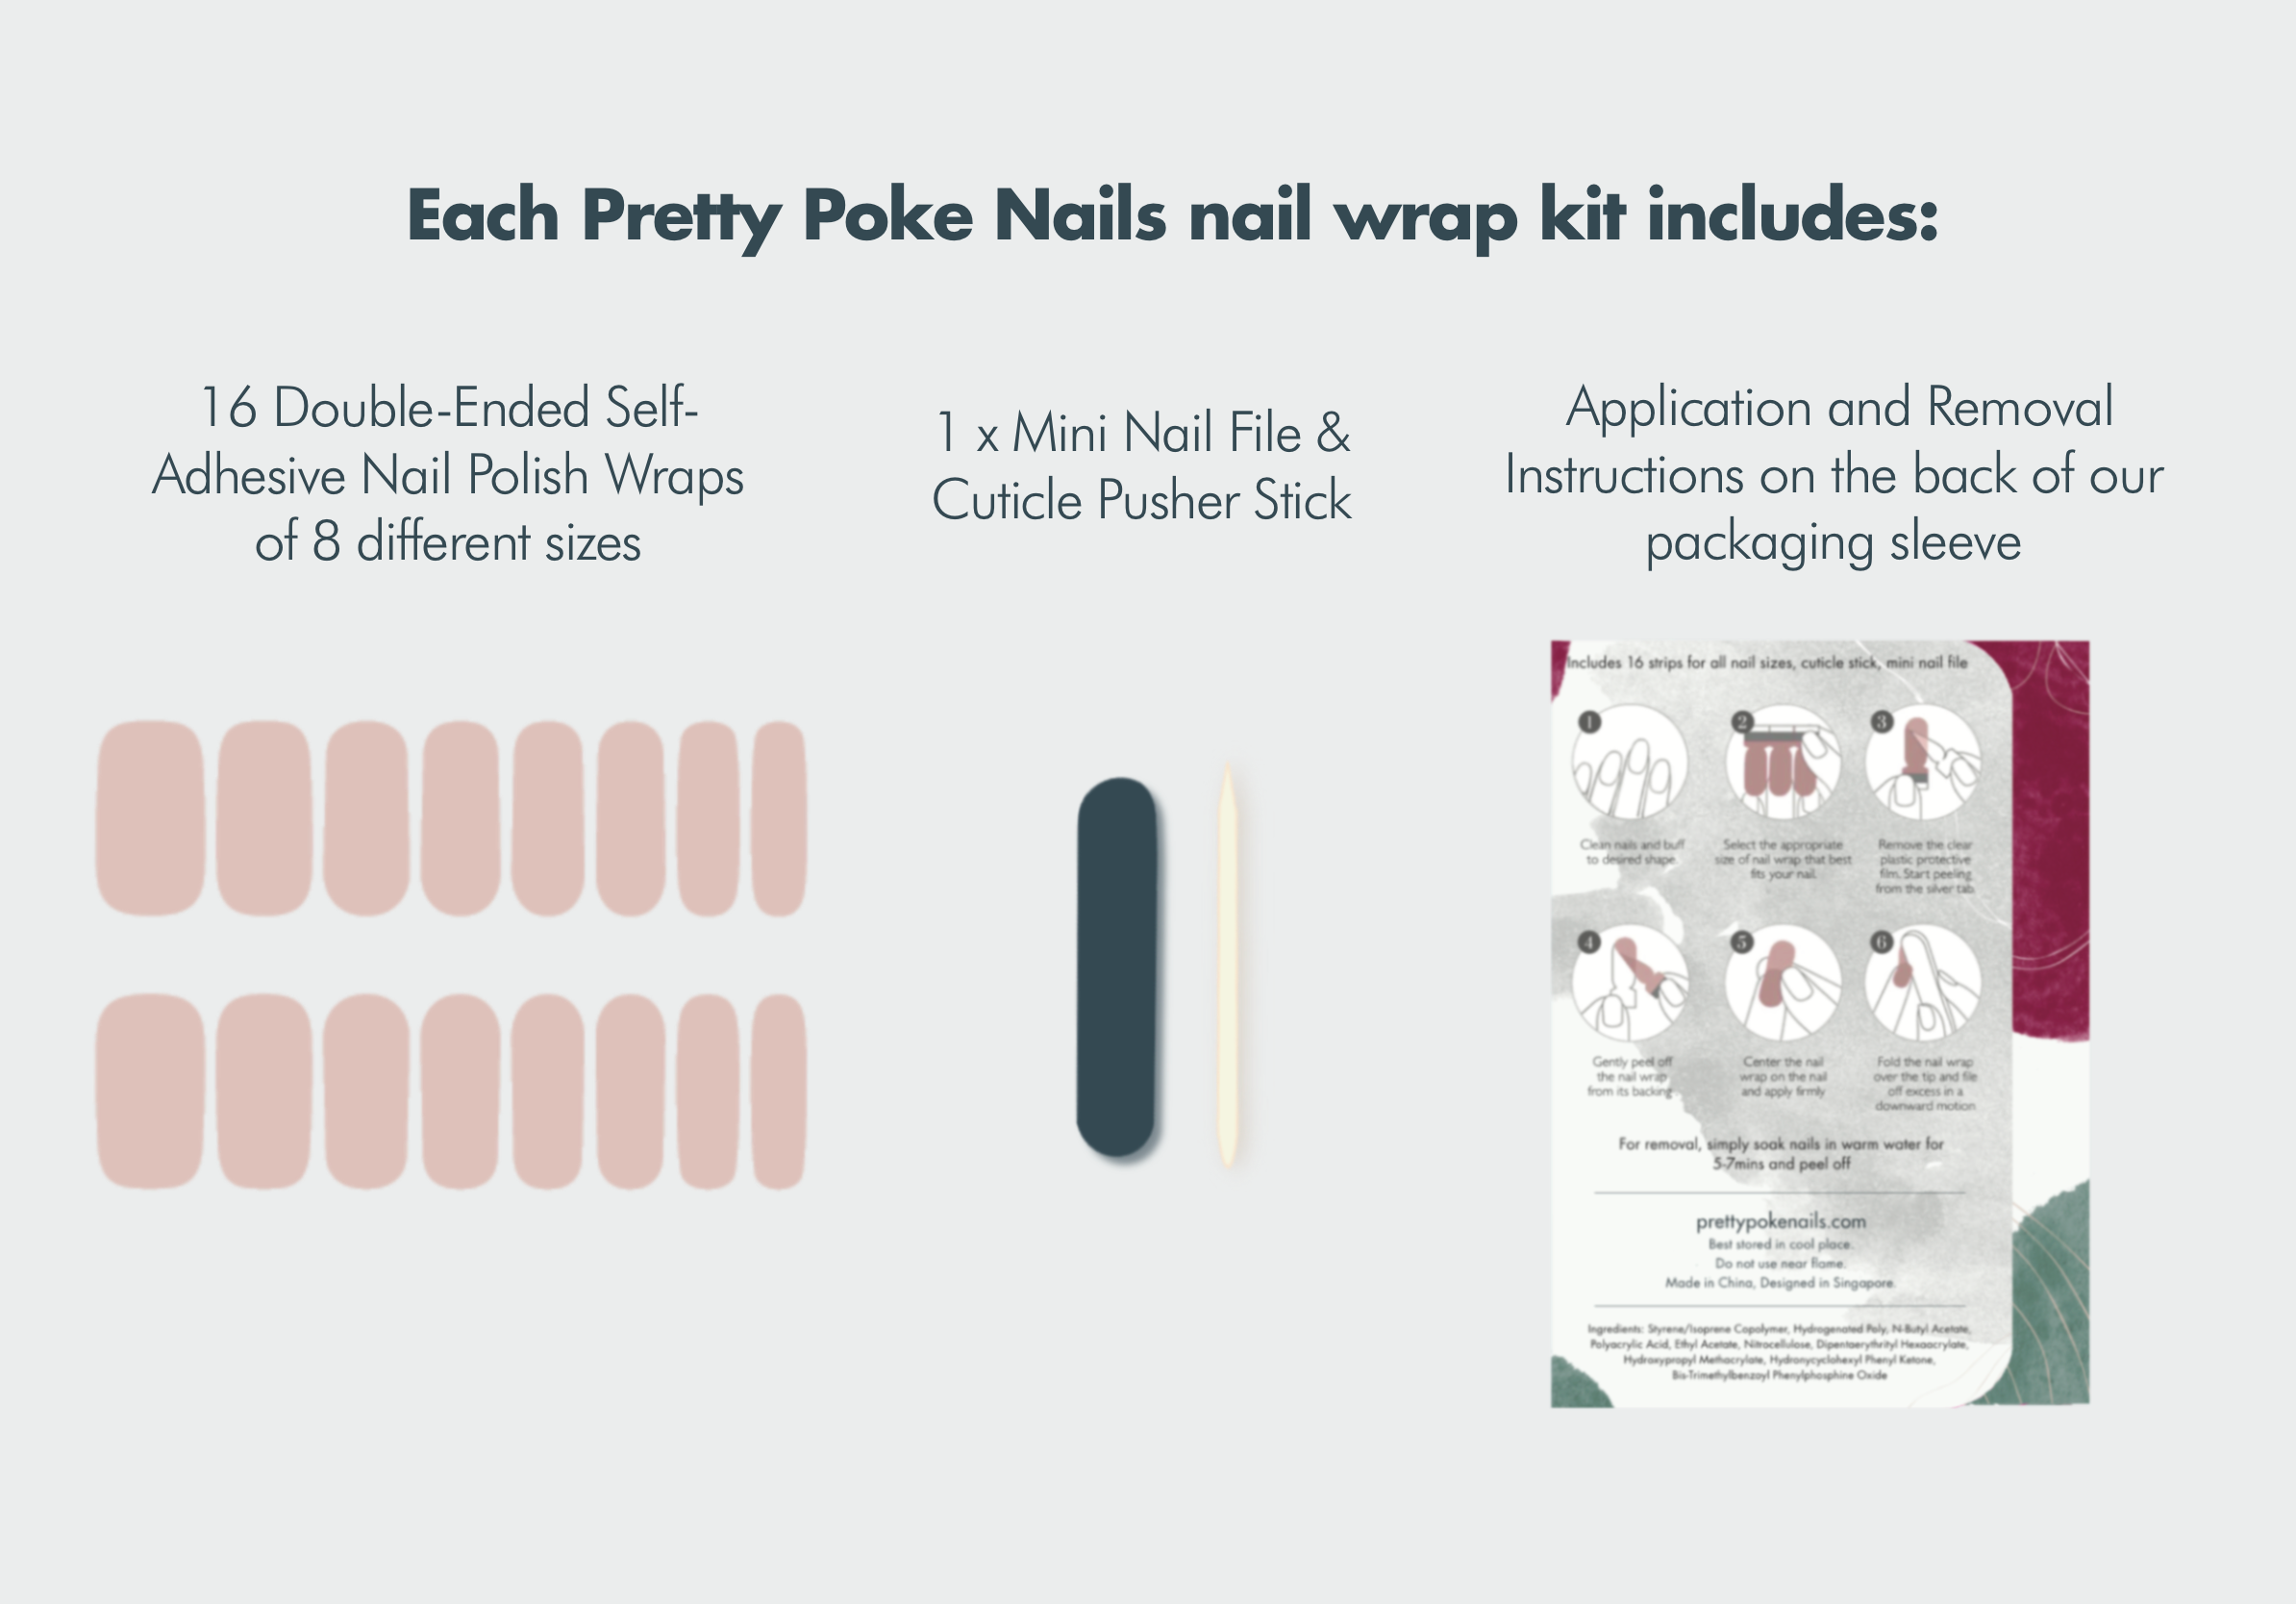 nail wrap kit includes:  16 Double-Ended Self-Adhesive Nail Polish Wraps of 8 different sizes 1 x Mini Nail File 1 x Cuticle Pusher Stick Instructions for application and removal on the back of our packaging